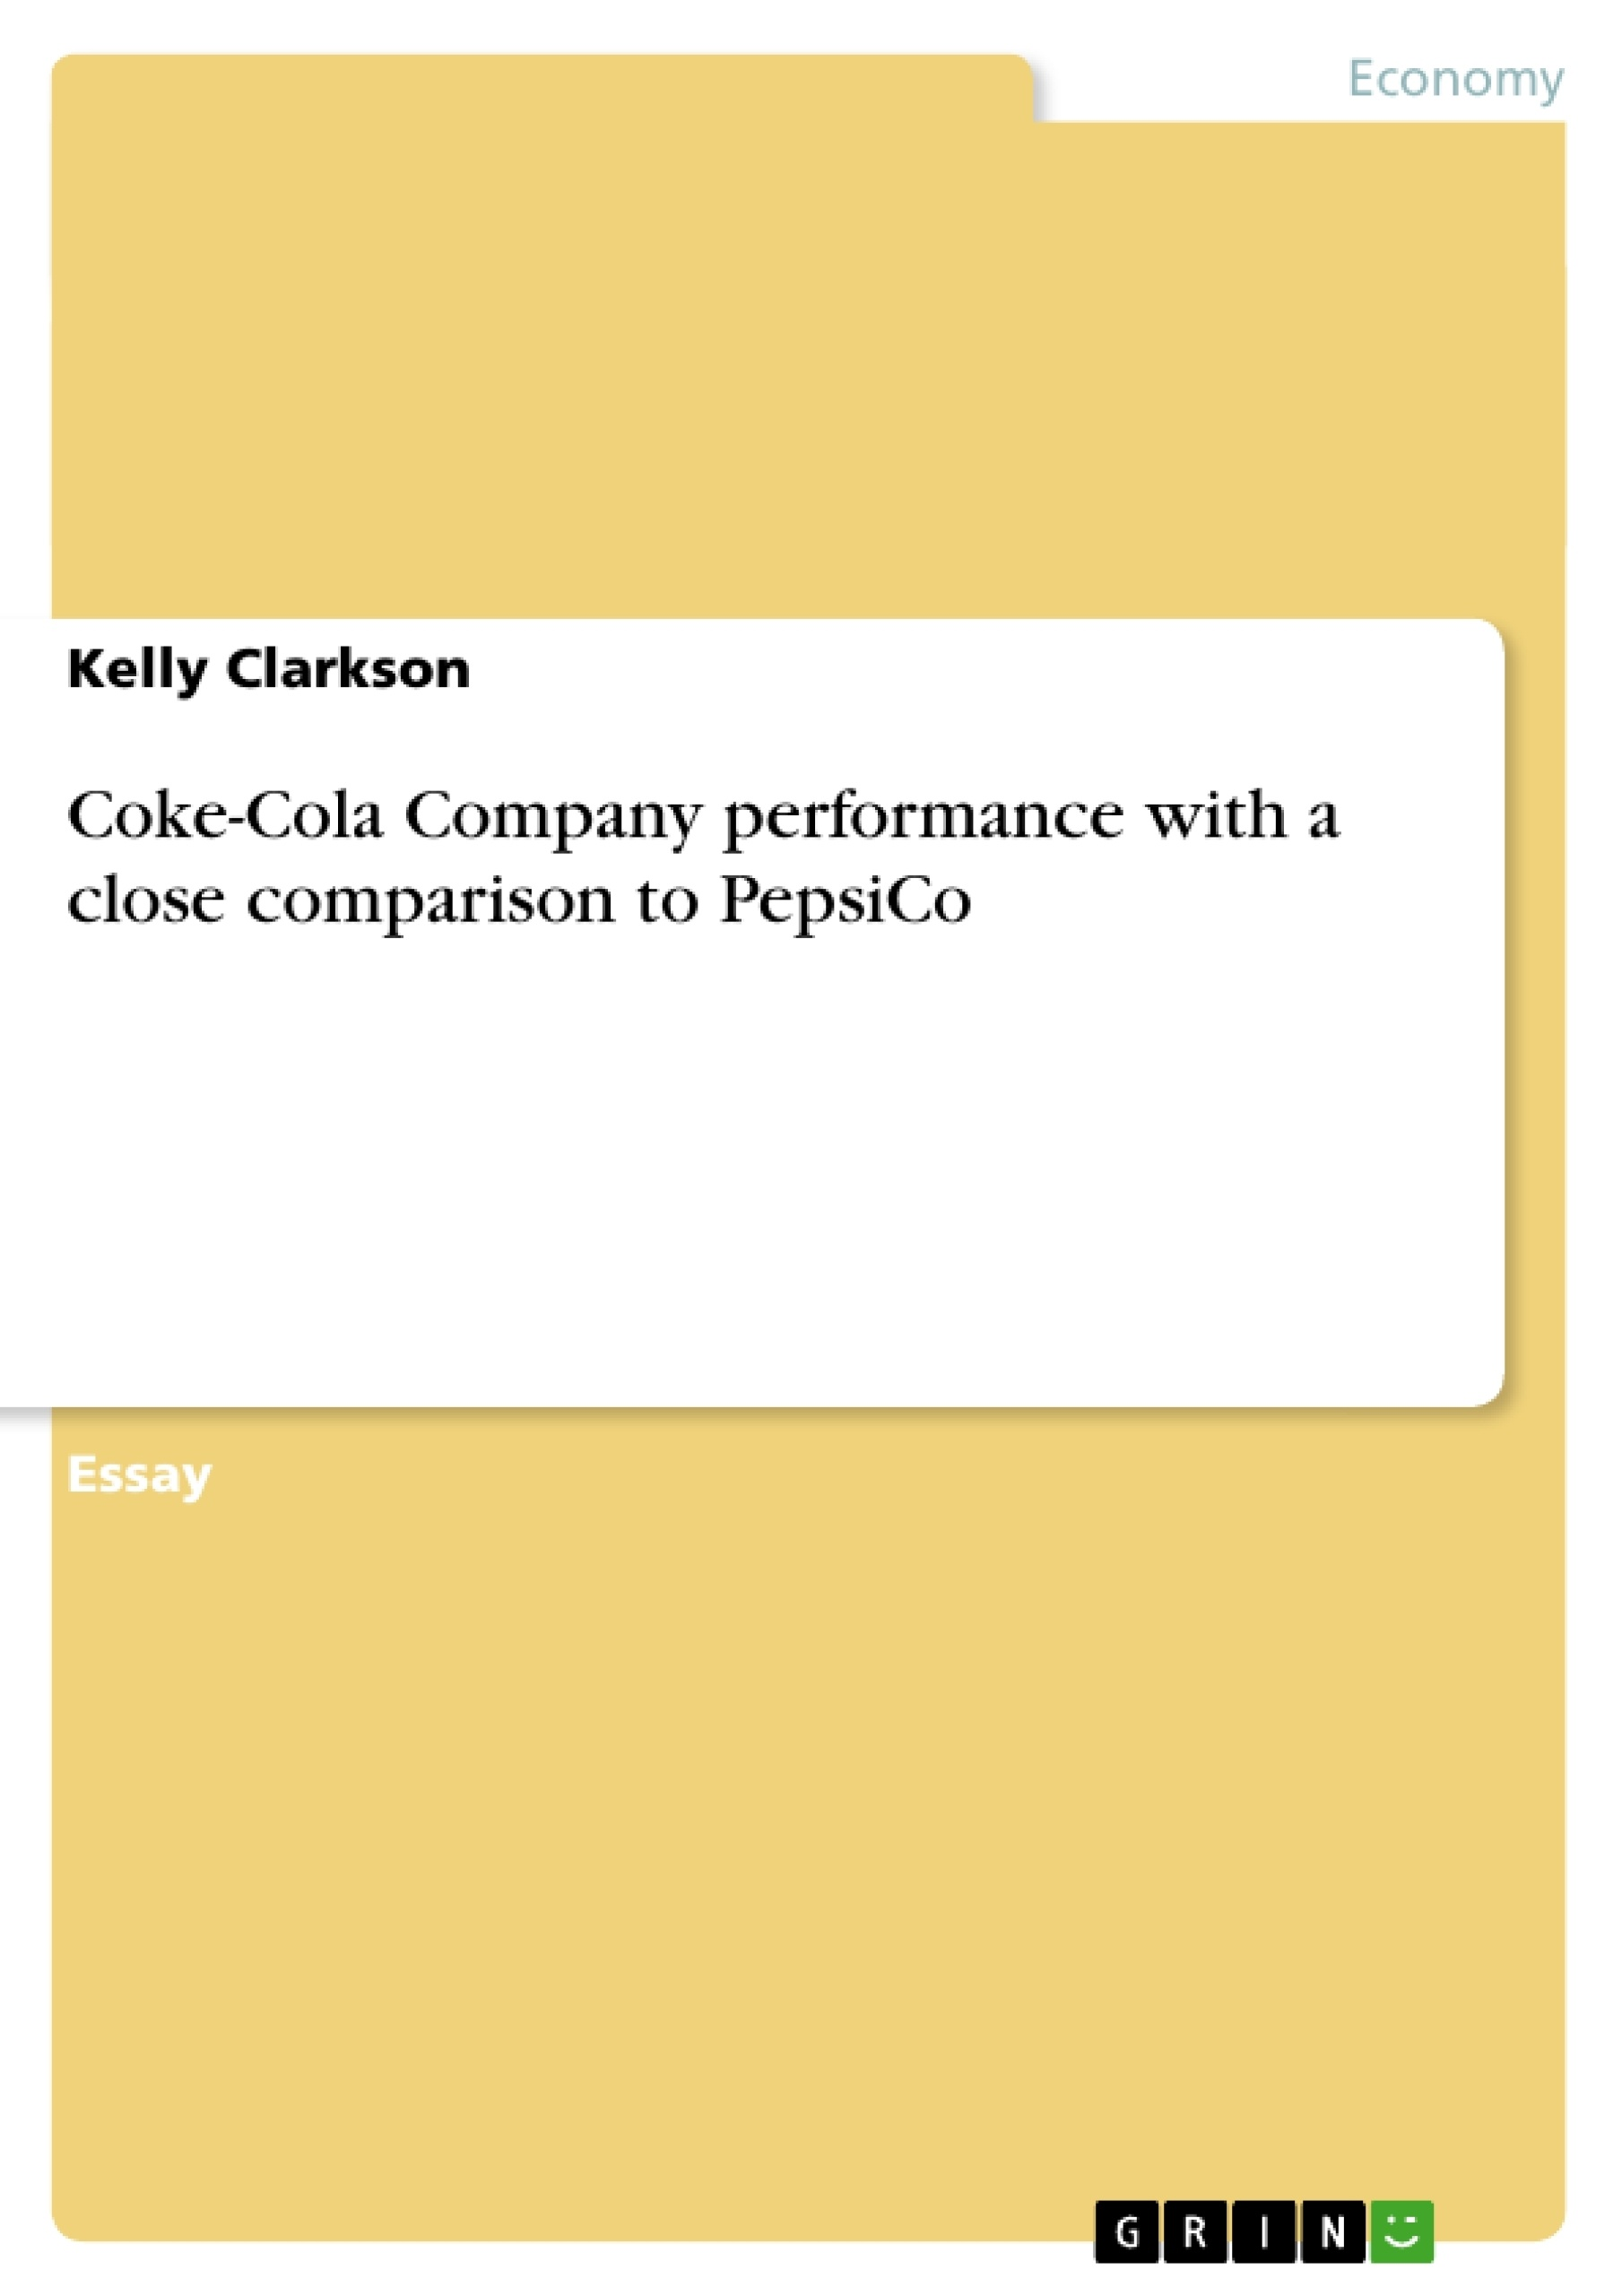 Title: Coke-Cola Company performance with a close comparison to PepsiCo